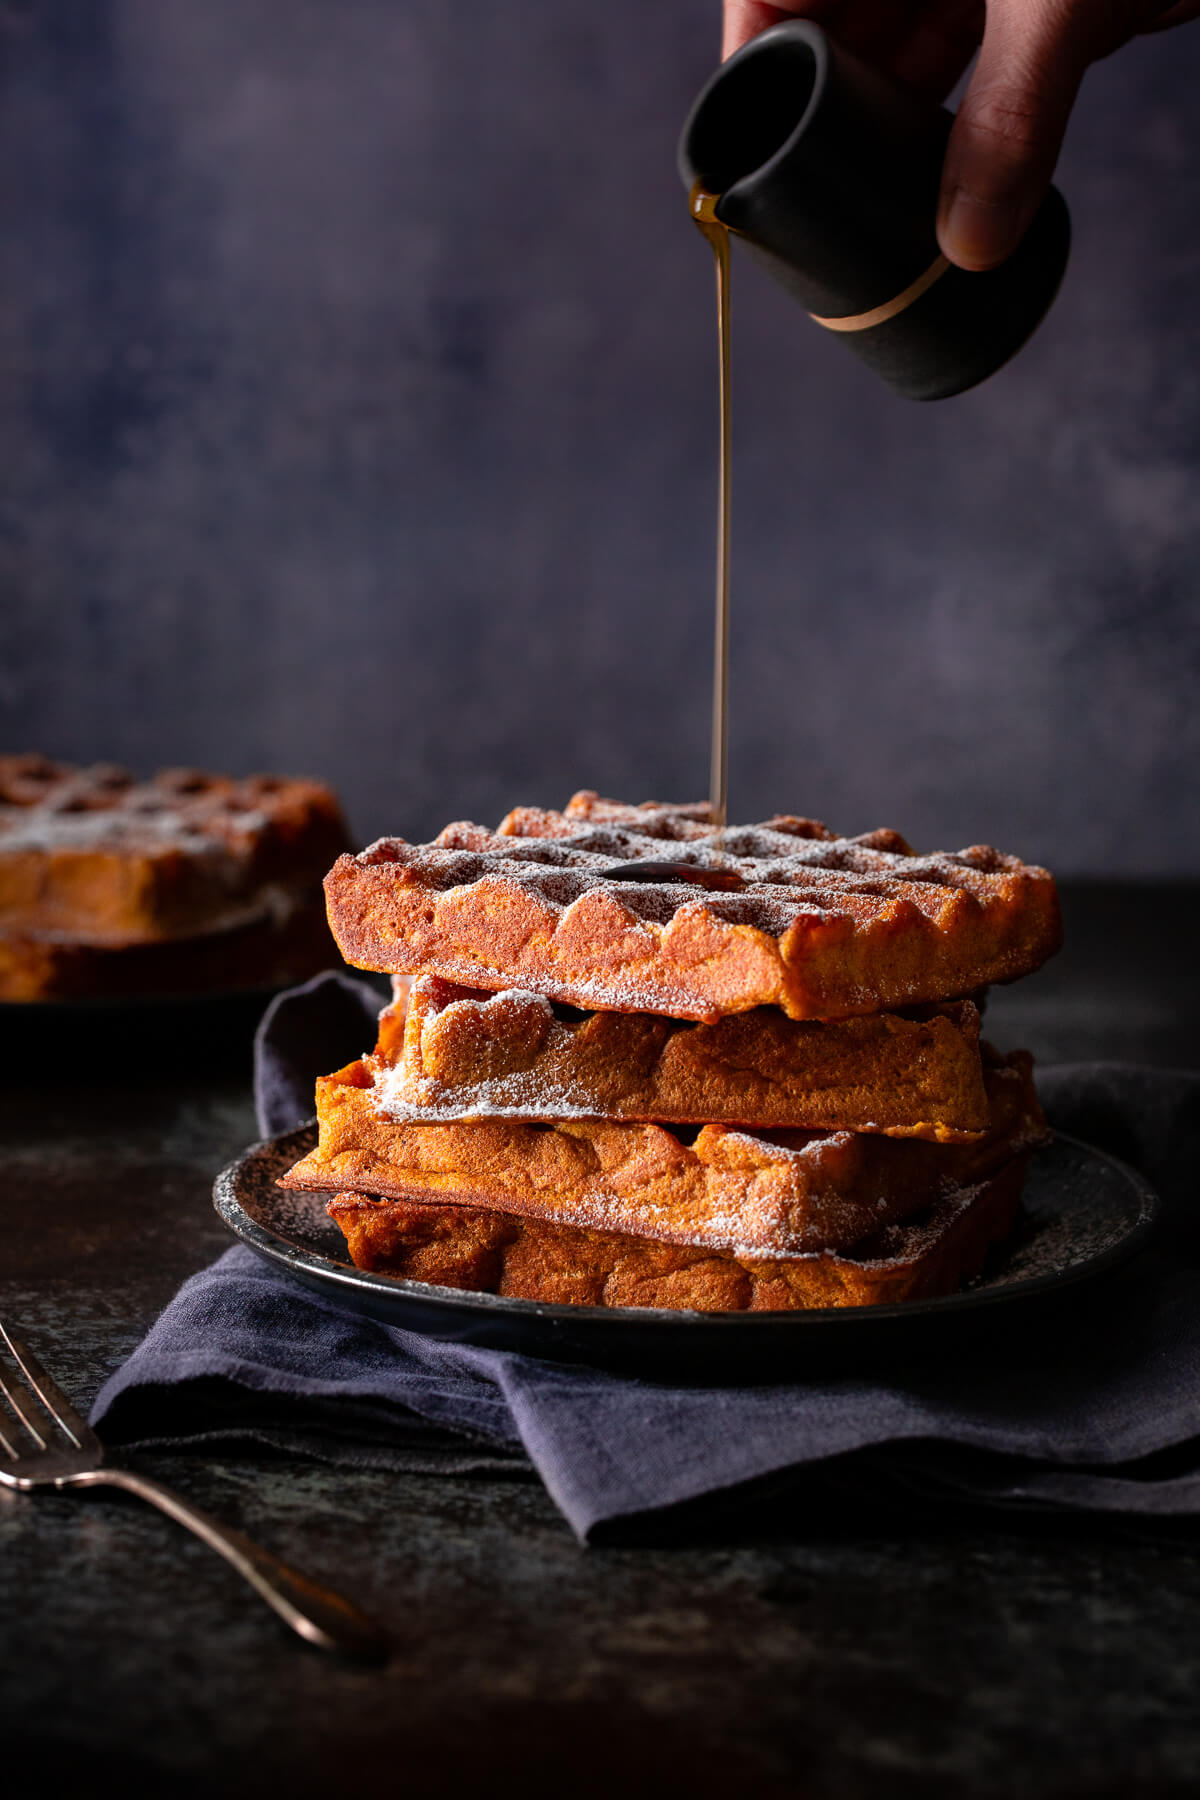 Syrup being poured on a stack of pumpkin spice waffles.